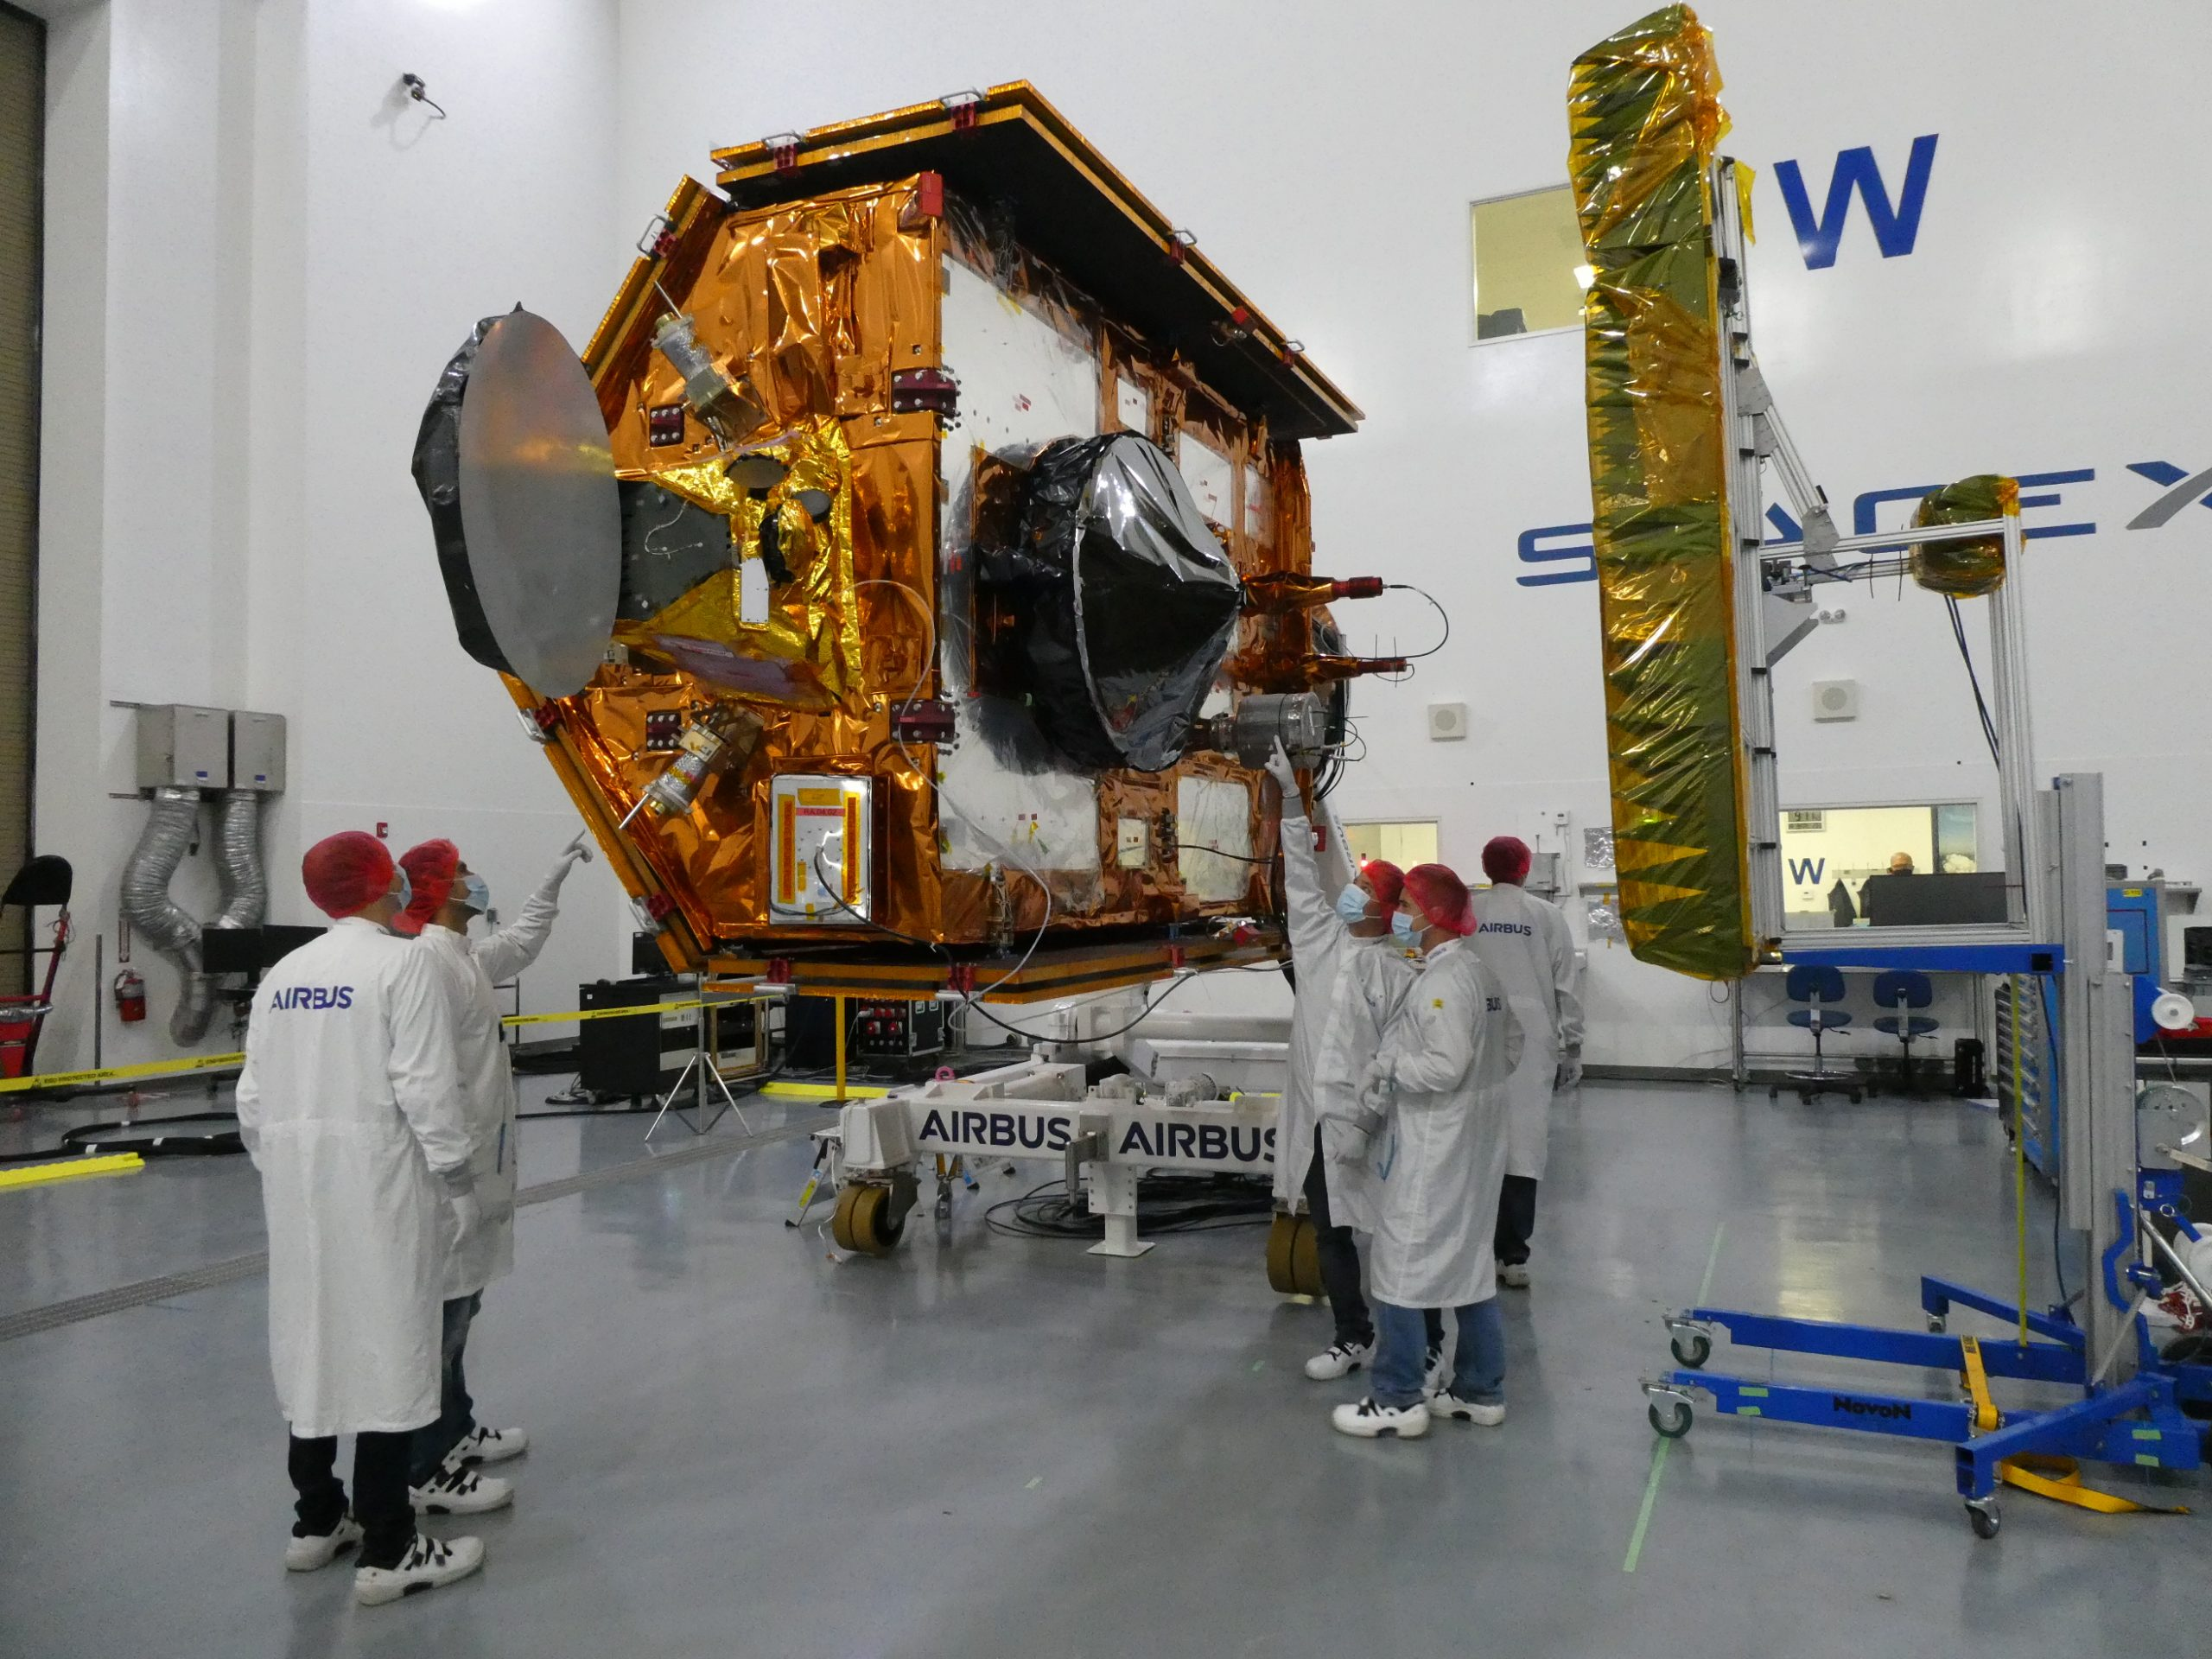 Sentinel-6 Michael Freilich team members from European Space Agency pose with the spacecraft during processing. Launch is scheduled for Nov. 11, 2020 from Vandenberg Air Force Base in California. NASA's Launch Services Program based at Kennedy Space Center is responsible for launch management.